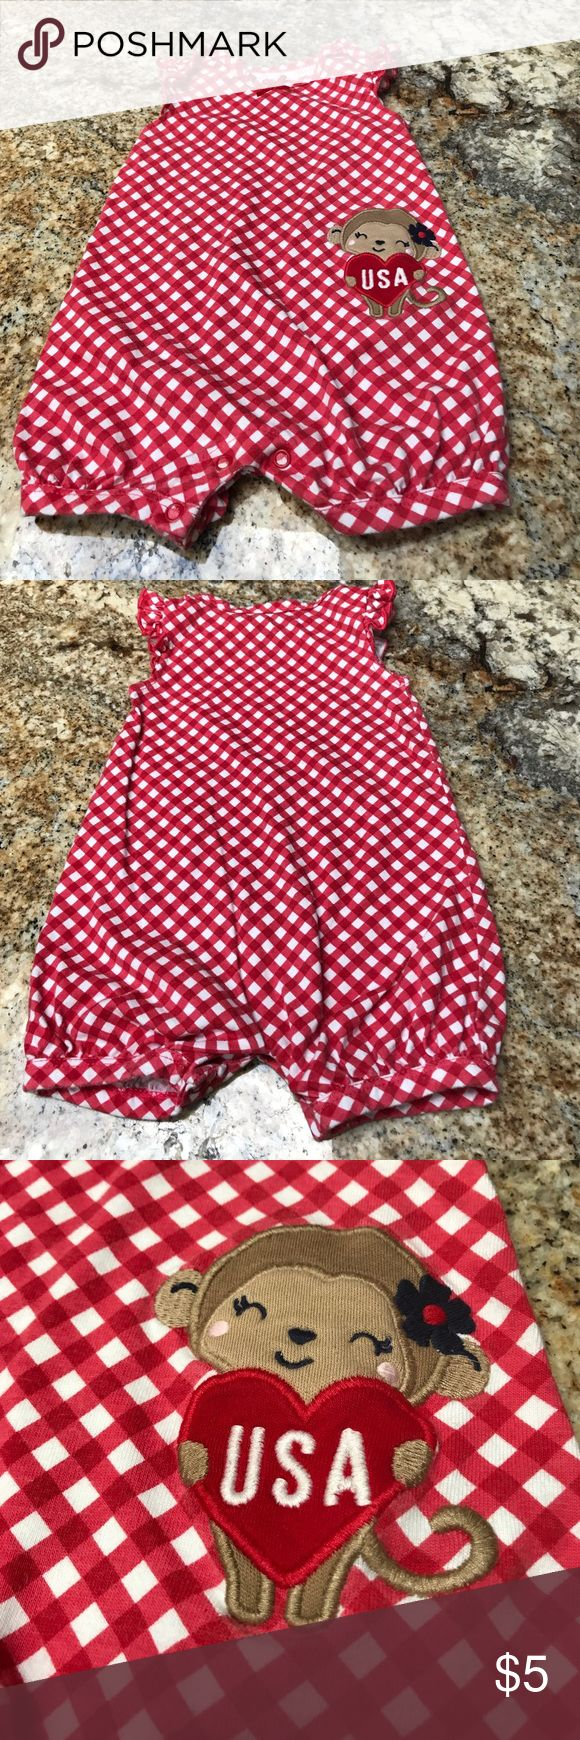 🇺🇸 USA Romper🇺🇸 Adorable USA Romper. Great for 4th of July. Worn twice, has some fading from washing. 💕bundle and save💕 Carter's Bottoms Jumpsuits & Rompers